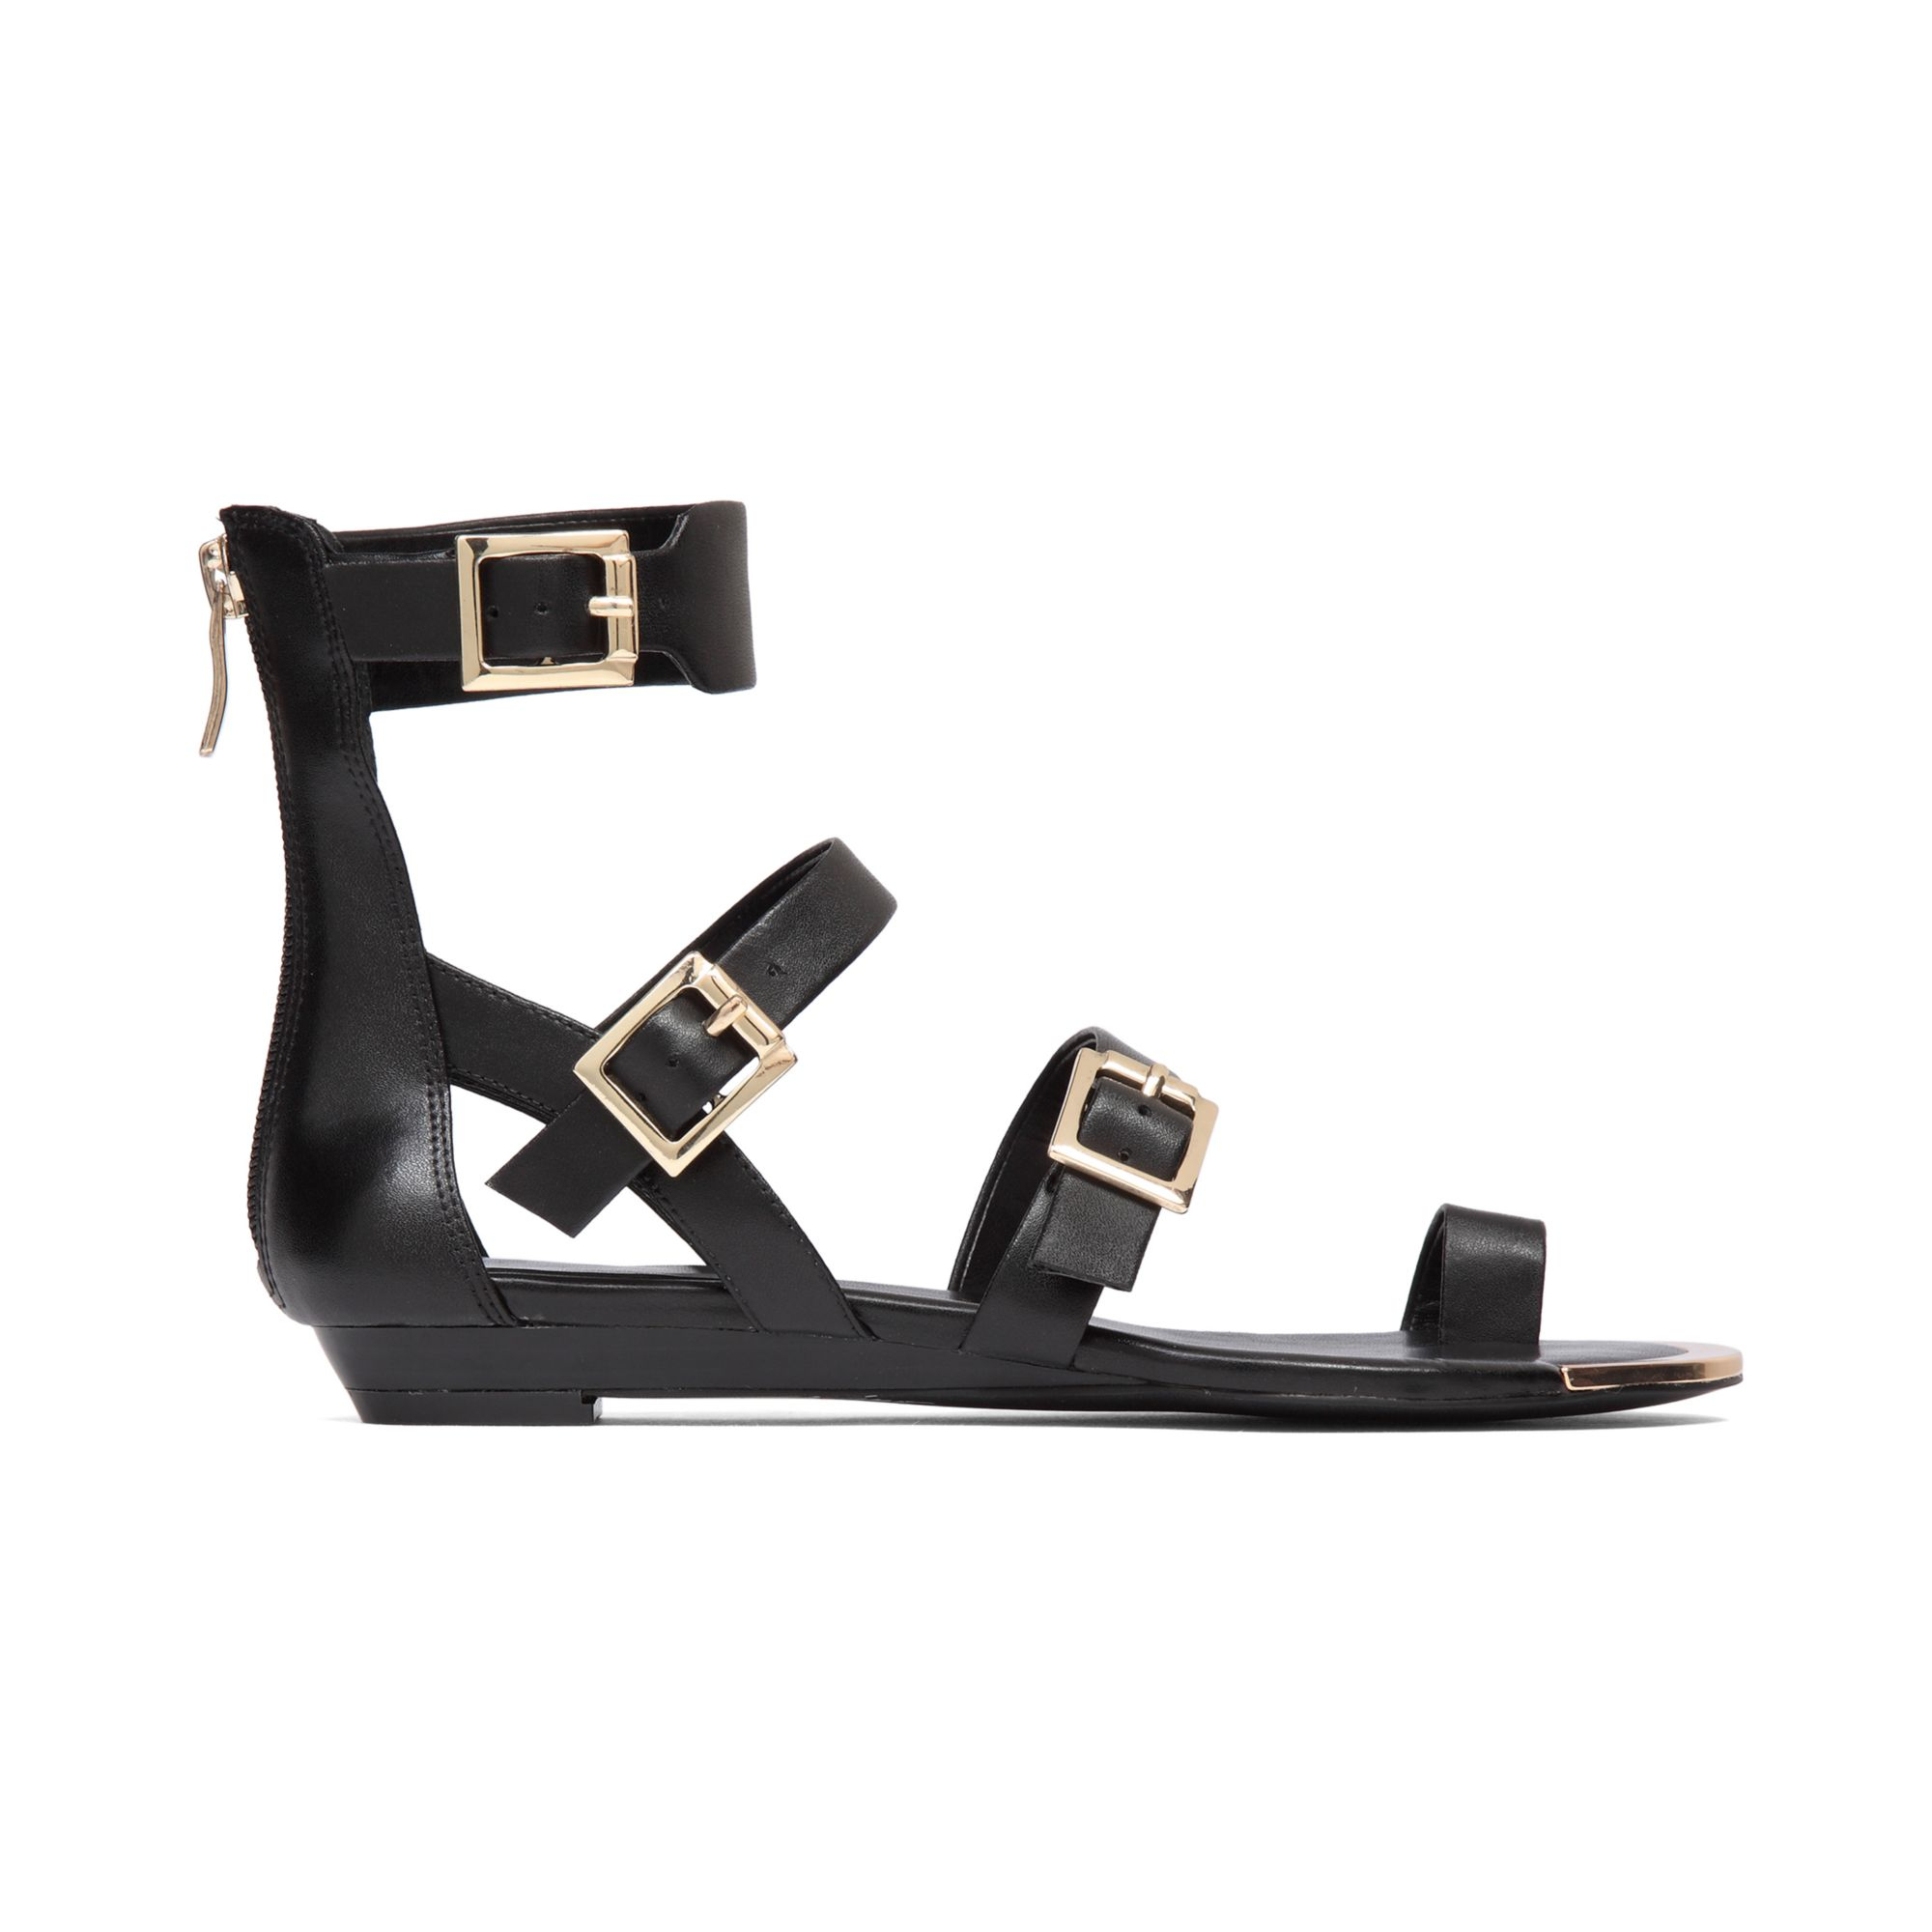 e88f76e26bb6 Lyst - BCBGeneration Archy Flat Sandals in Black